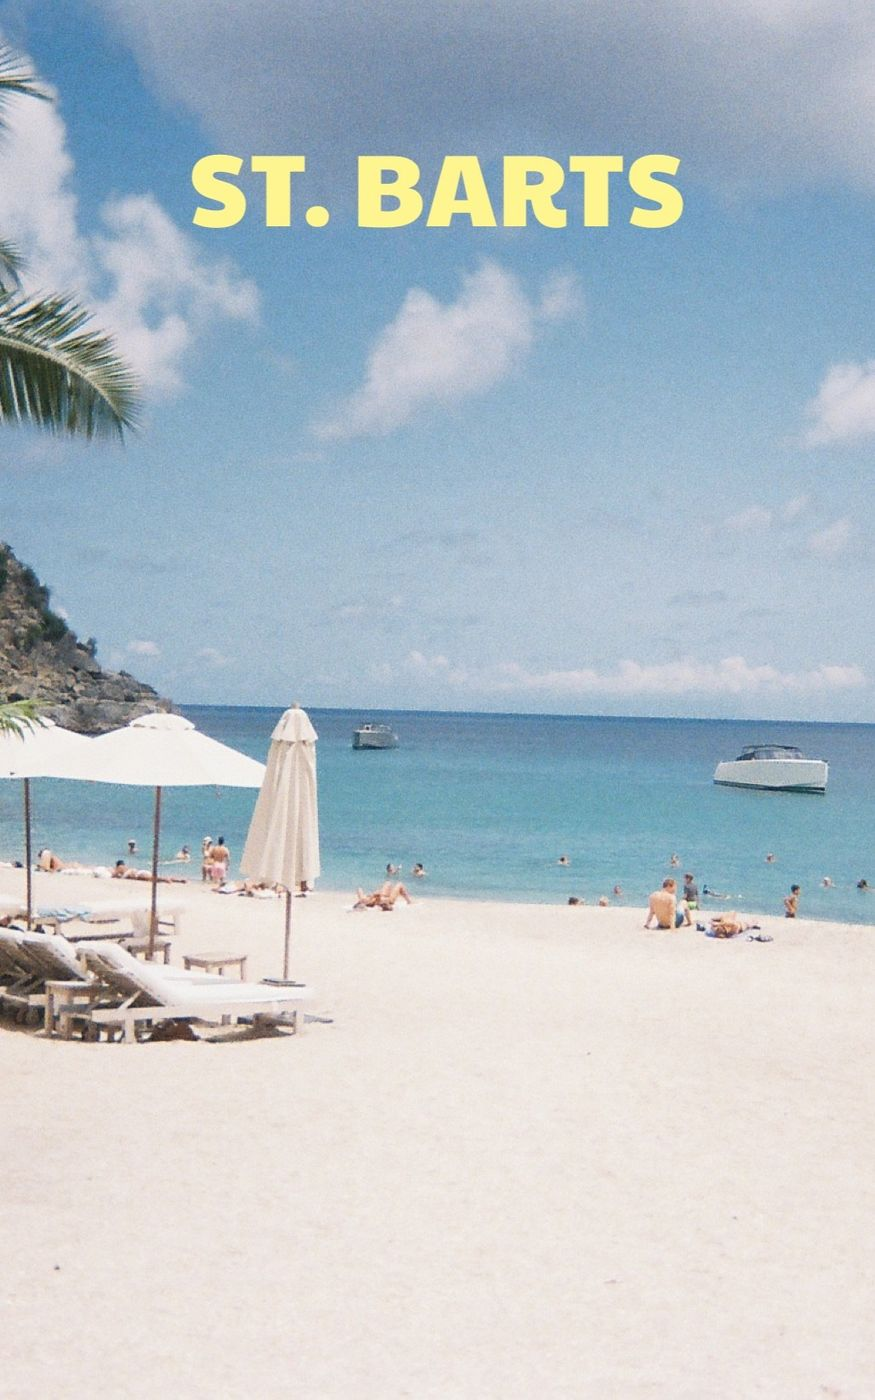 My Time in St. Barts